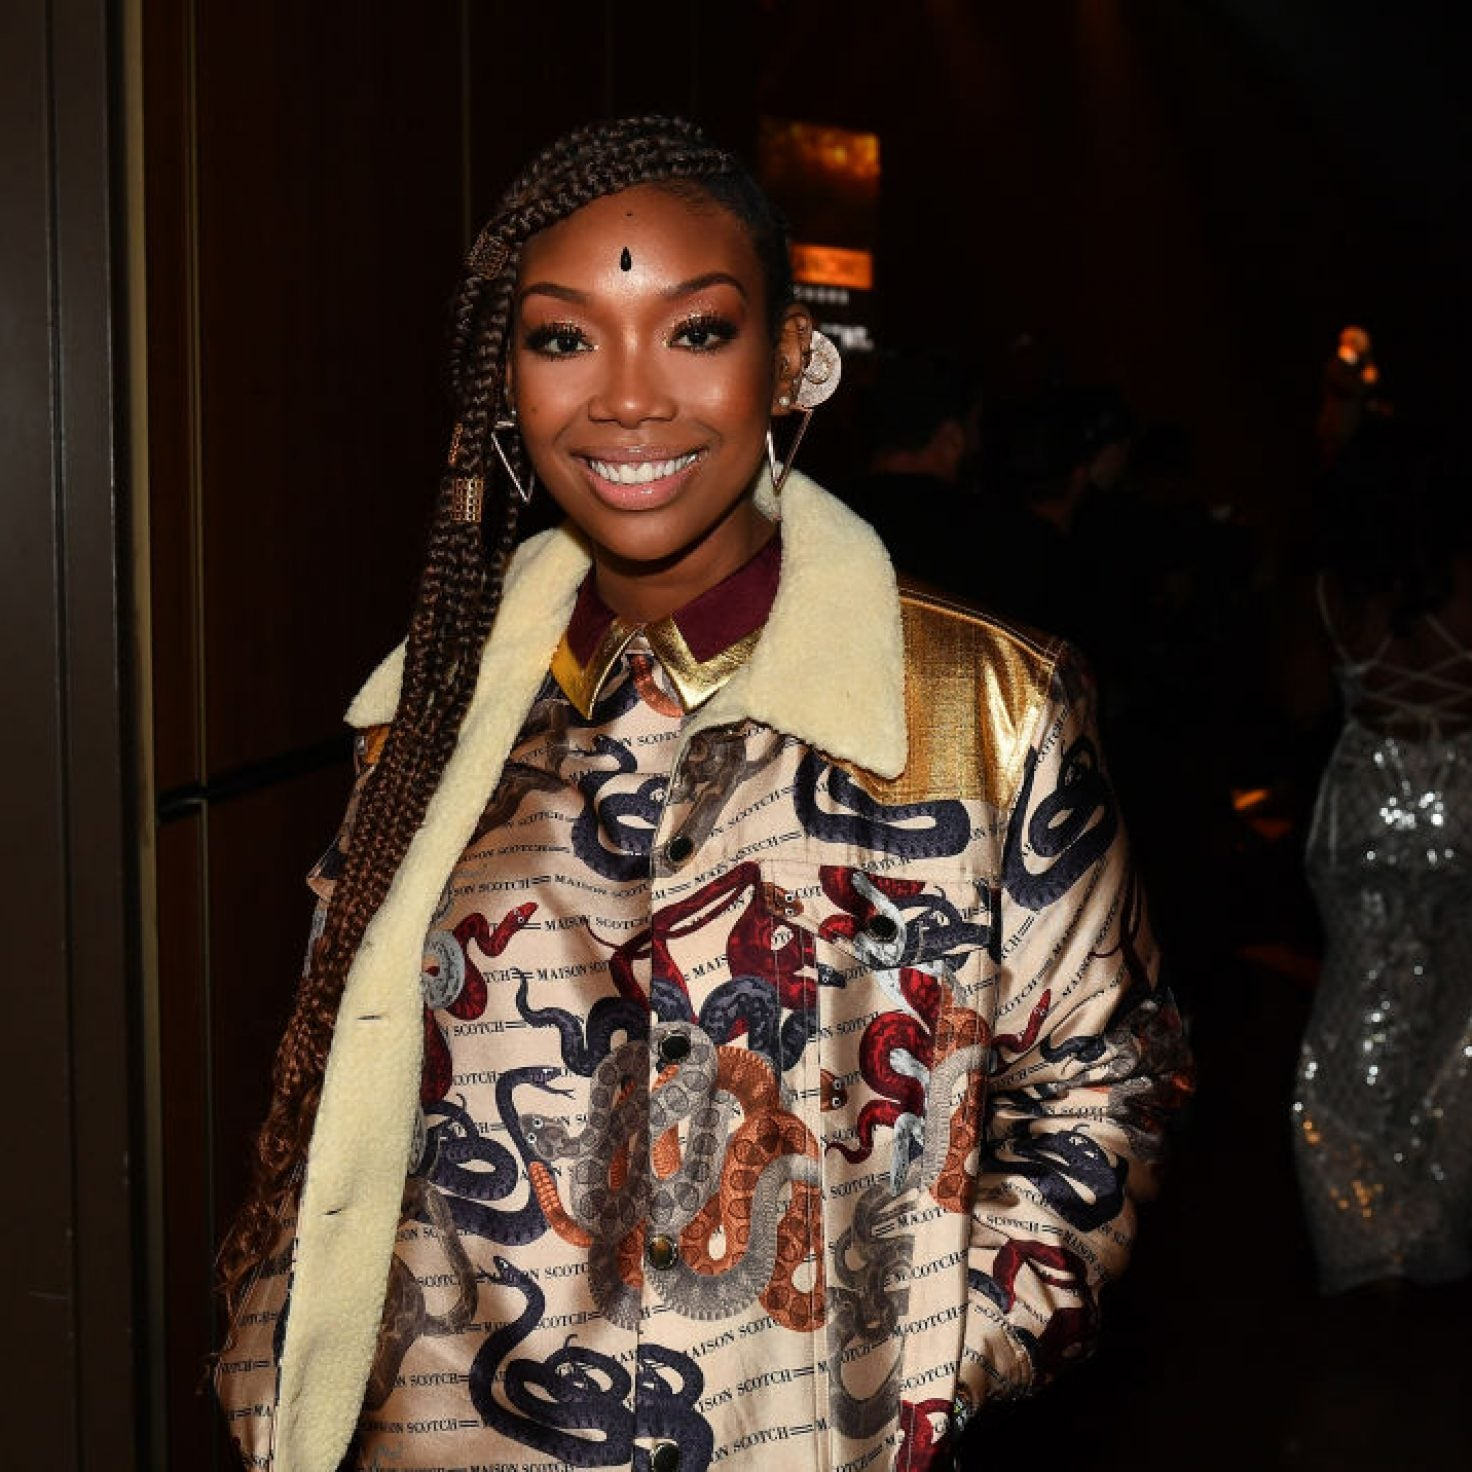 Brandy Recounts How Her Daughter Saved Her From Suicidal Thoughts: 'If Sy'rai Wasn't Here, I Wouldn't Be Either'